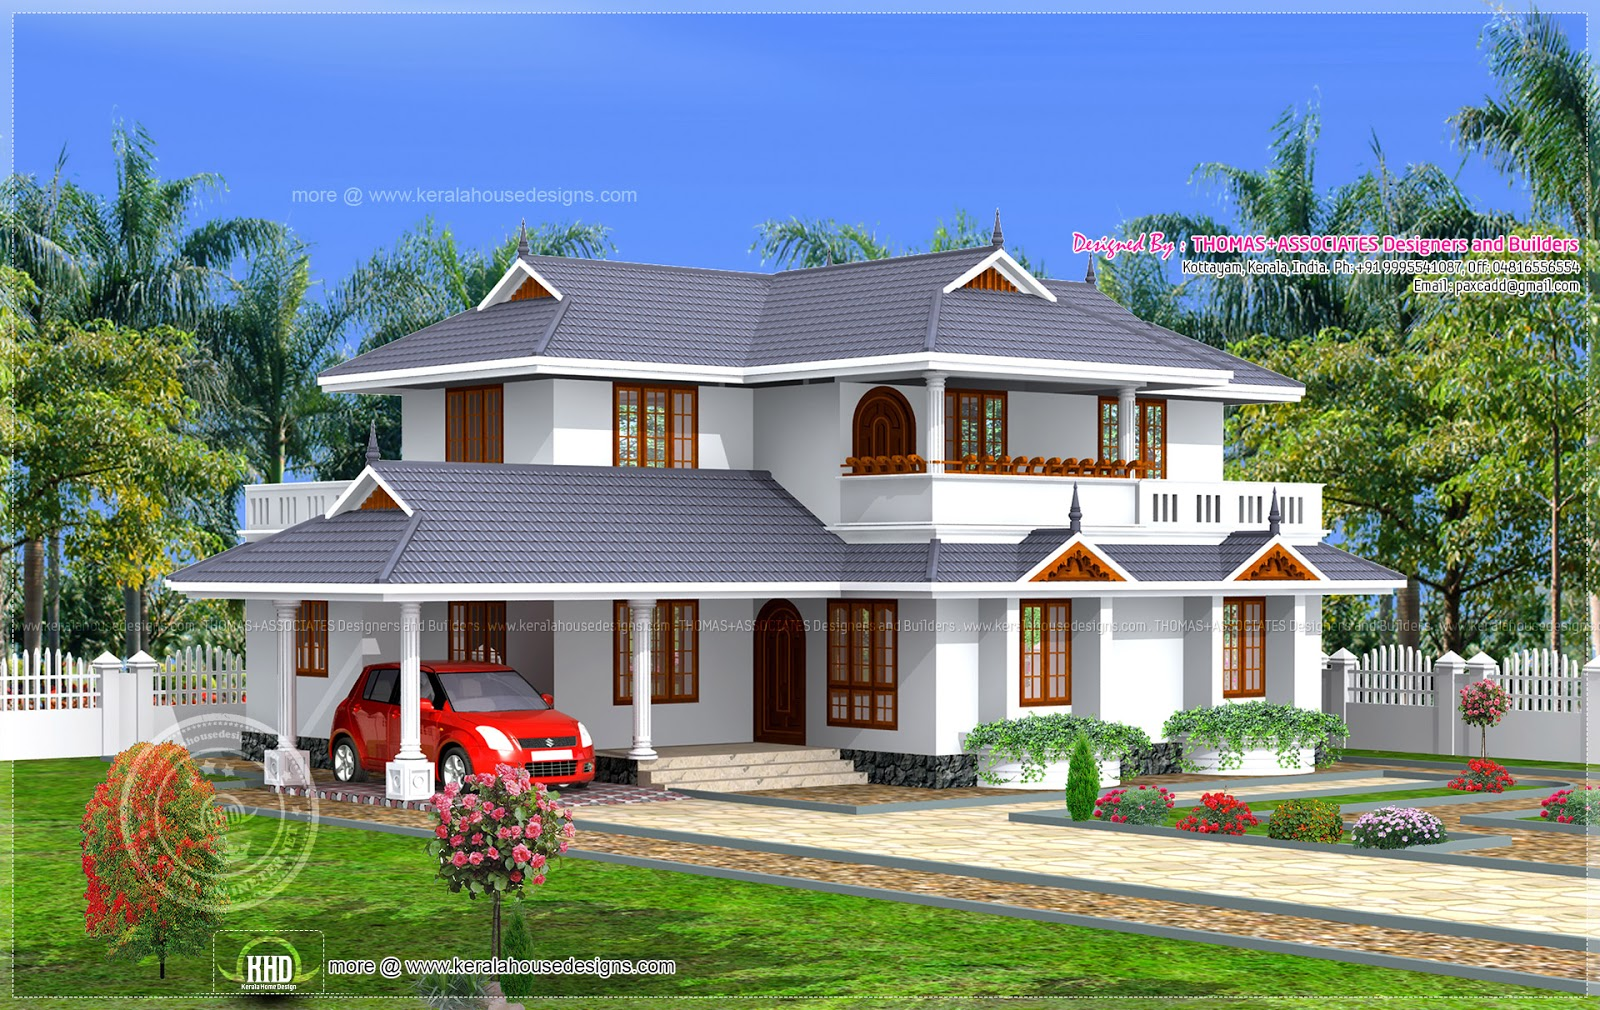 4 bedroom kerala model home in 204 kerala home for Kerala house models photos